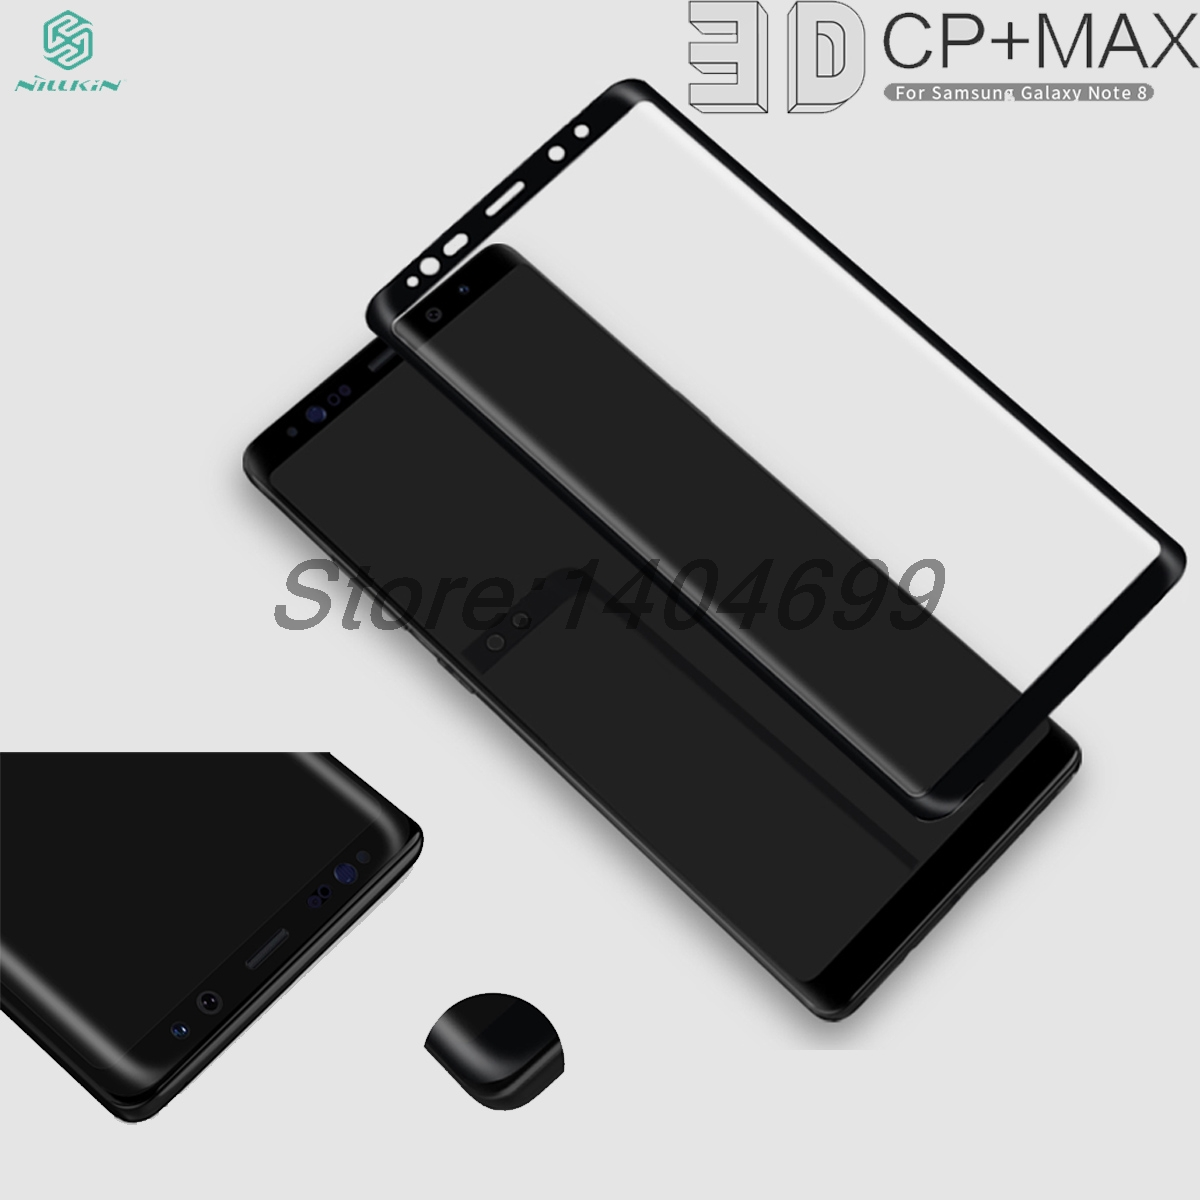 Screen Protector sFor Samsung Galaxy Note 8 Tempered Glass Nillkin 3D CP+ Max Full Cover Glass For Samsung Galaxy Note 8 Note8|glass for samsung|tempered glasstempered glass 3d - title=